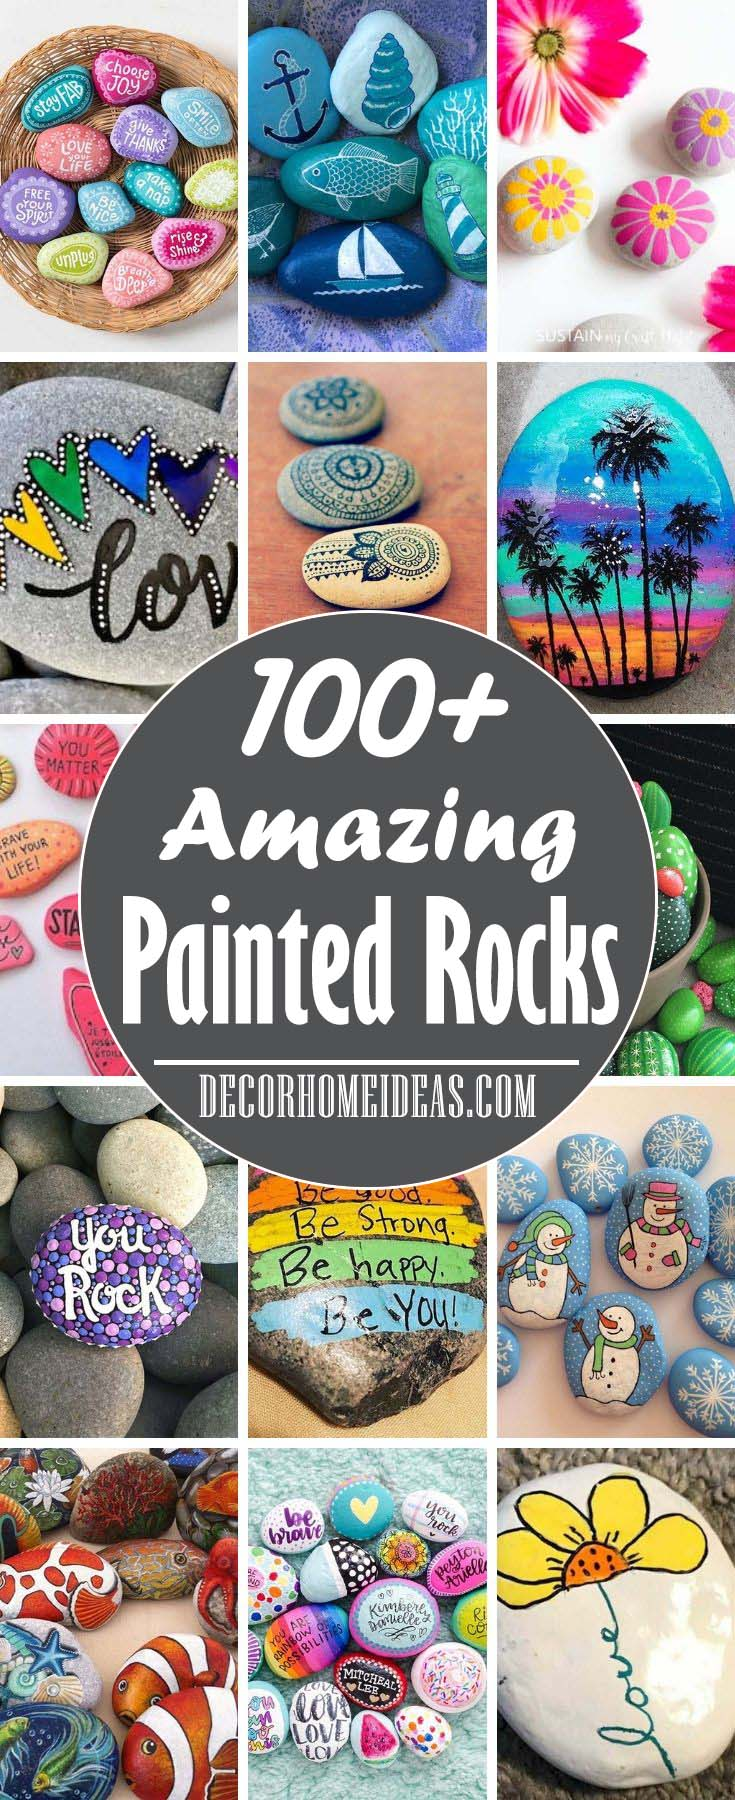 Best Painted Rocks Ideas and Designs. Photos, Tip and Tricks. 7 Easy steps to make a painted rock